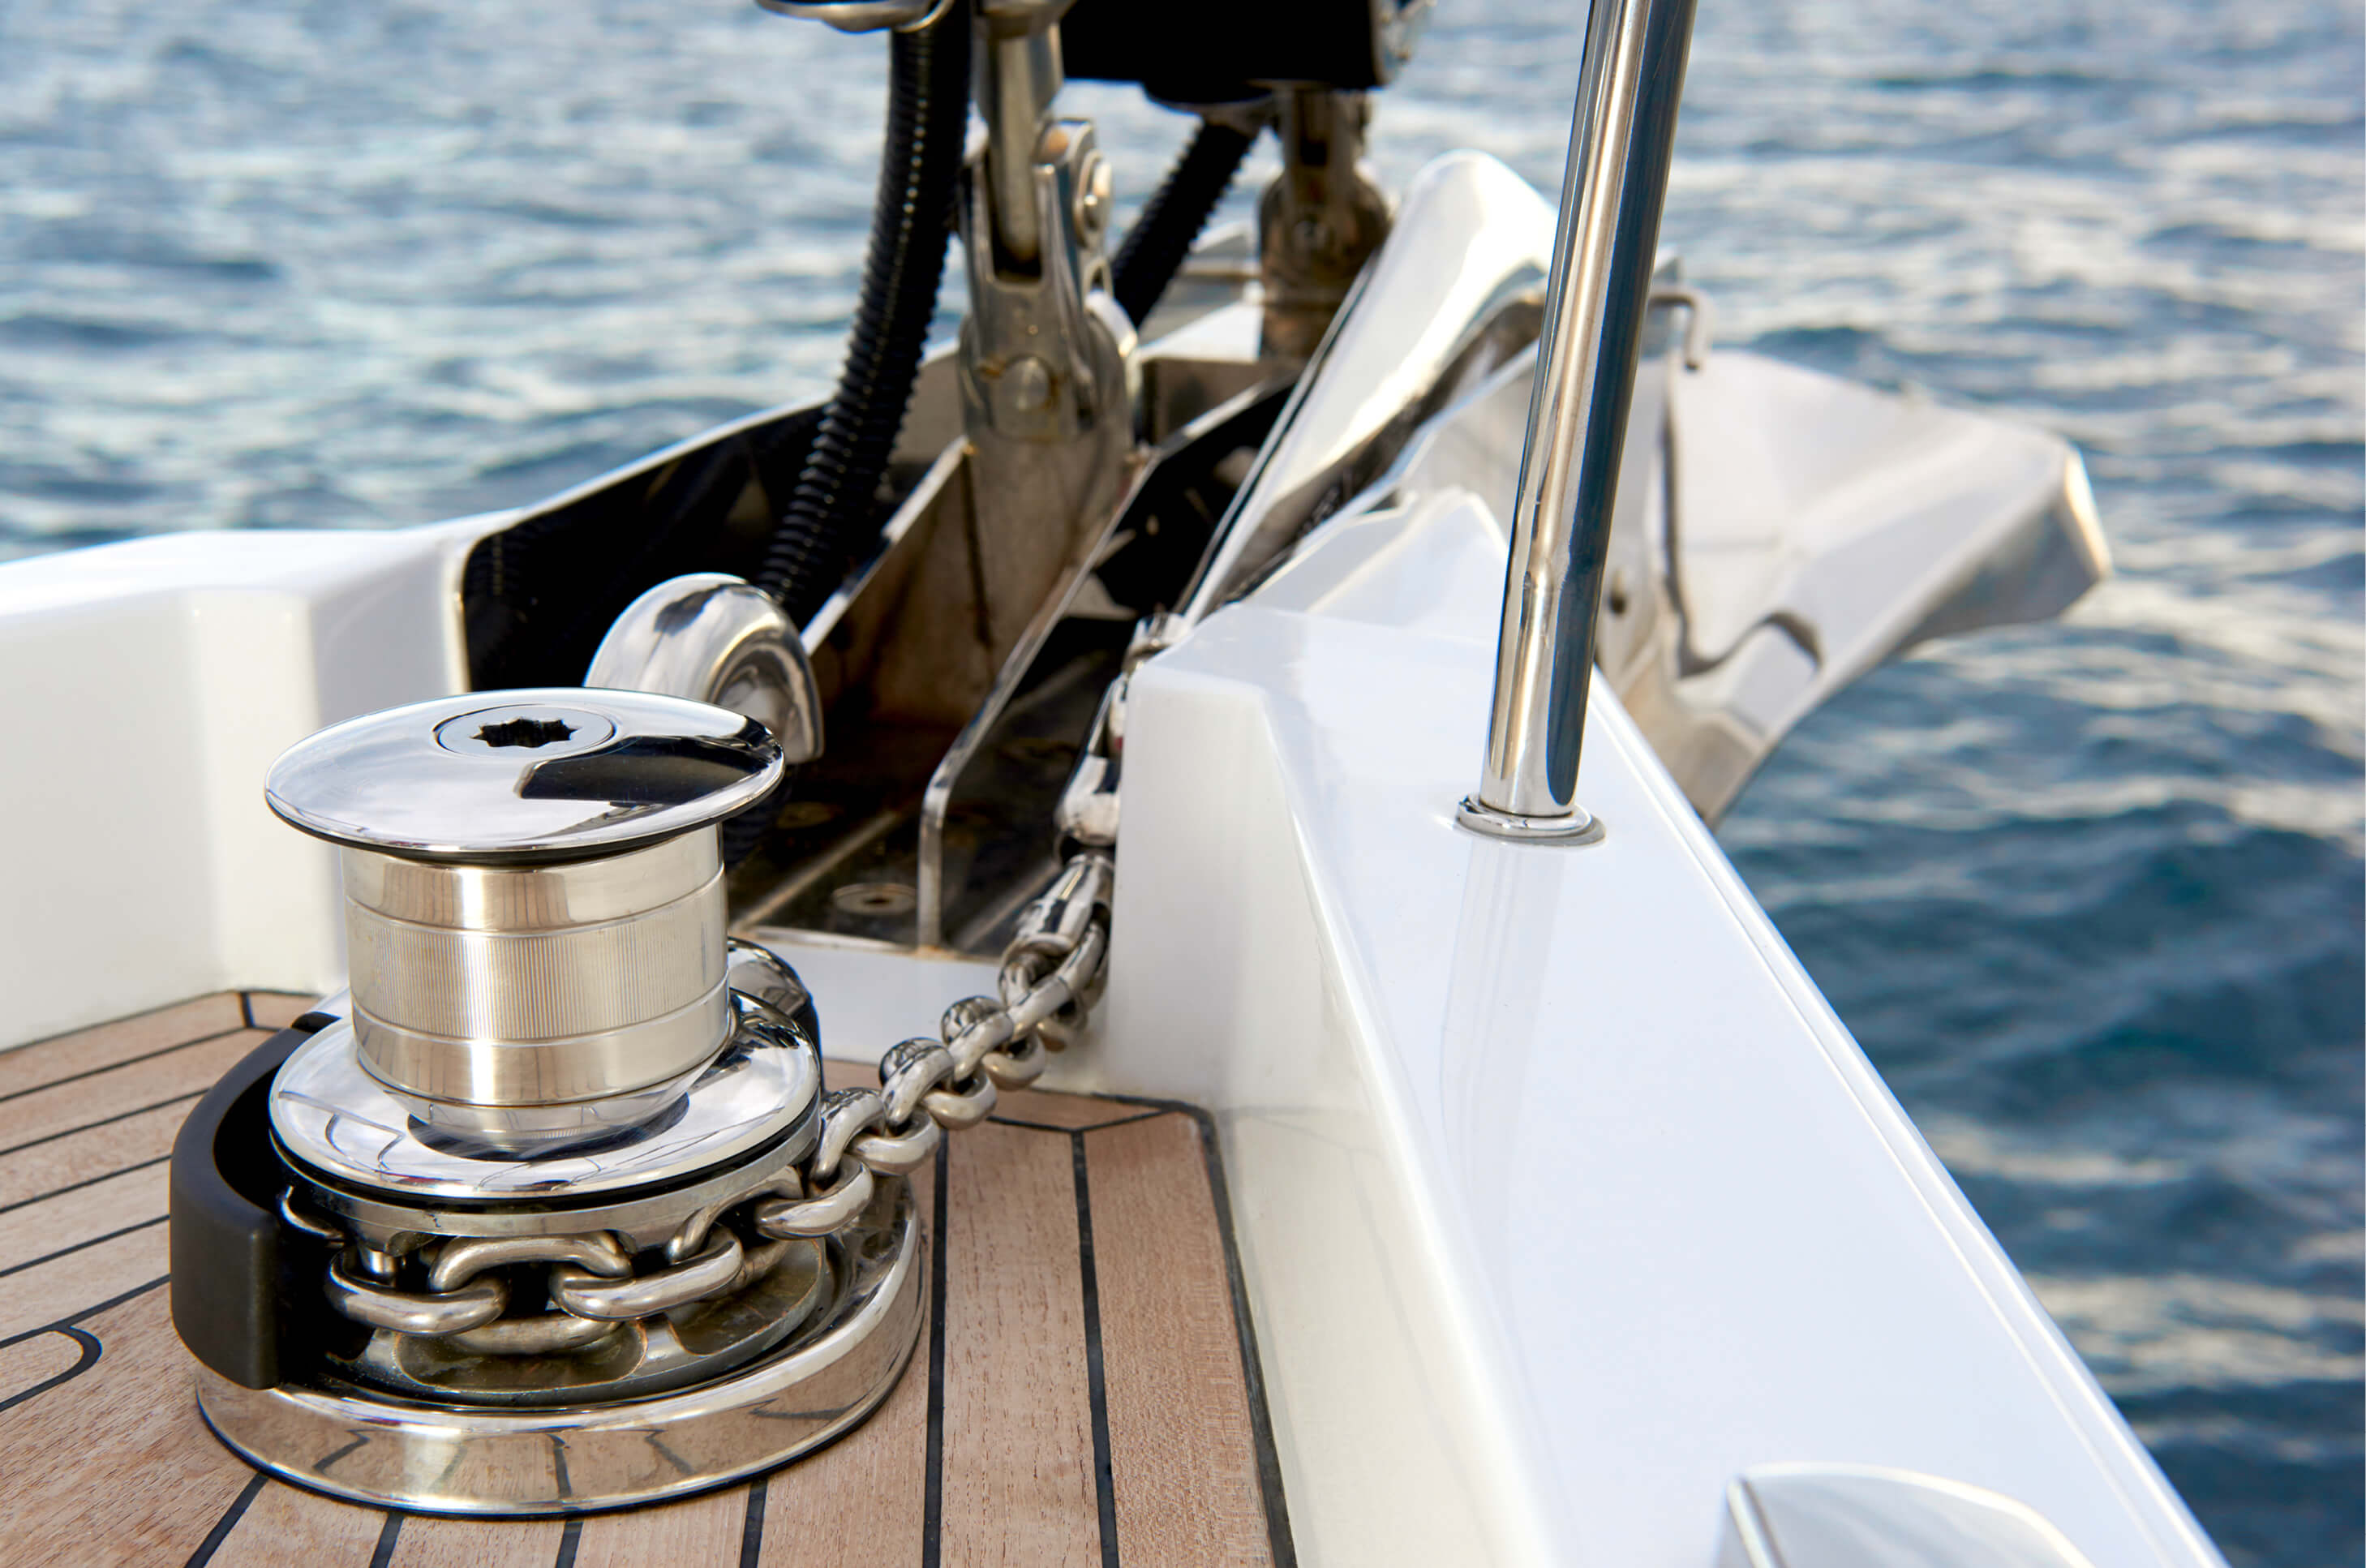 Hanse_588_Upgrade_-_Stainless_steel_anchor_with_chain.jpg